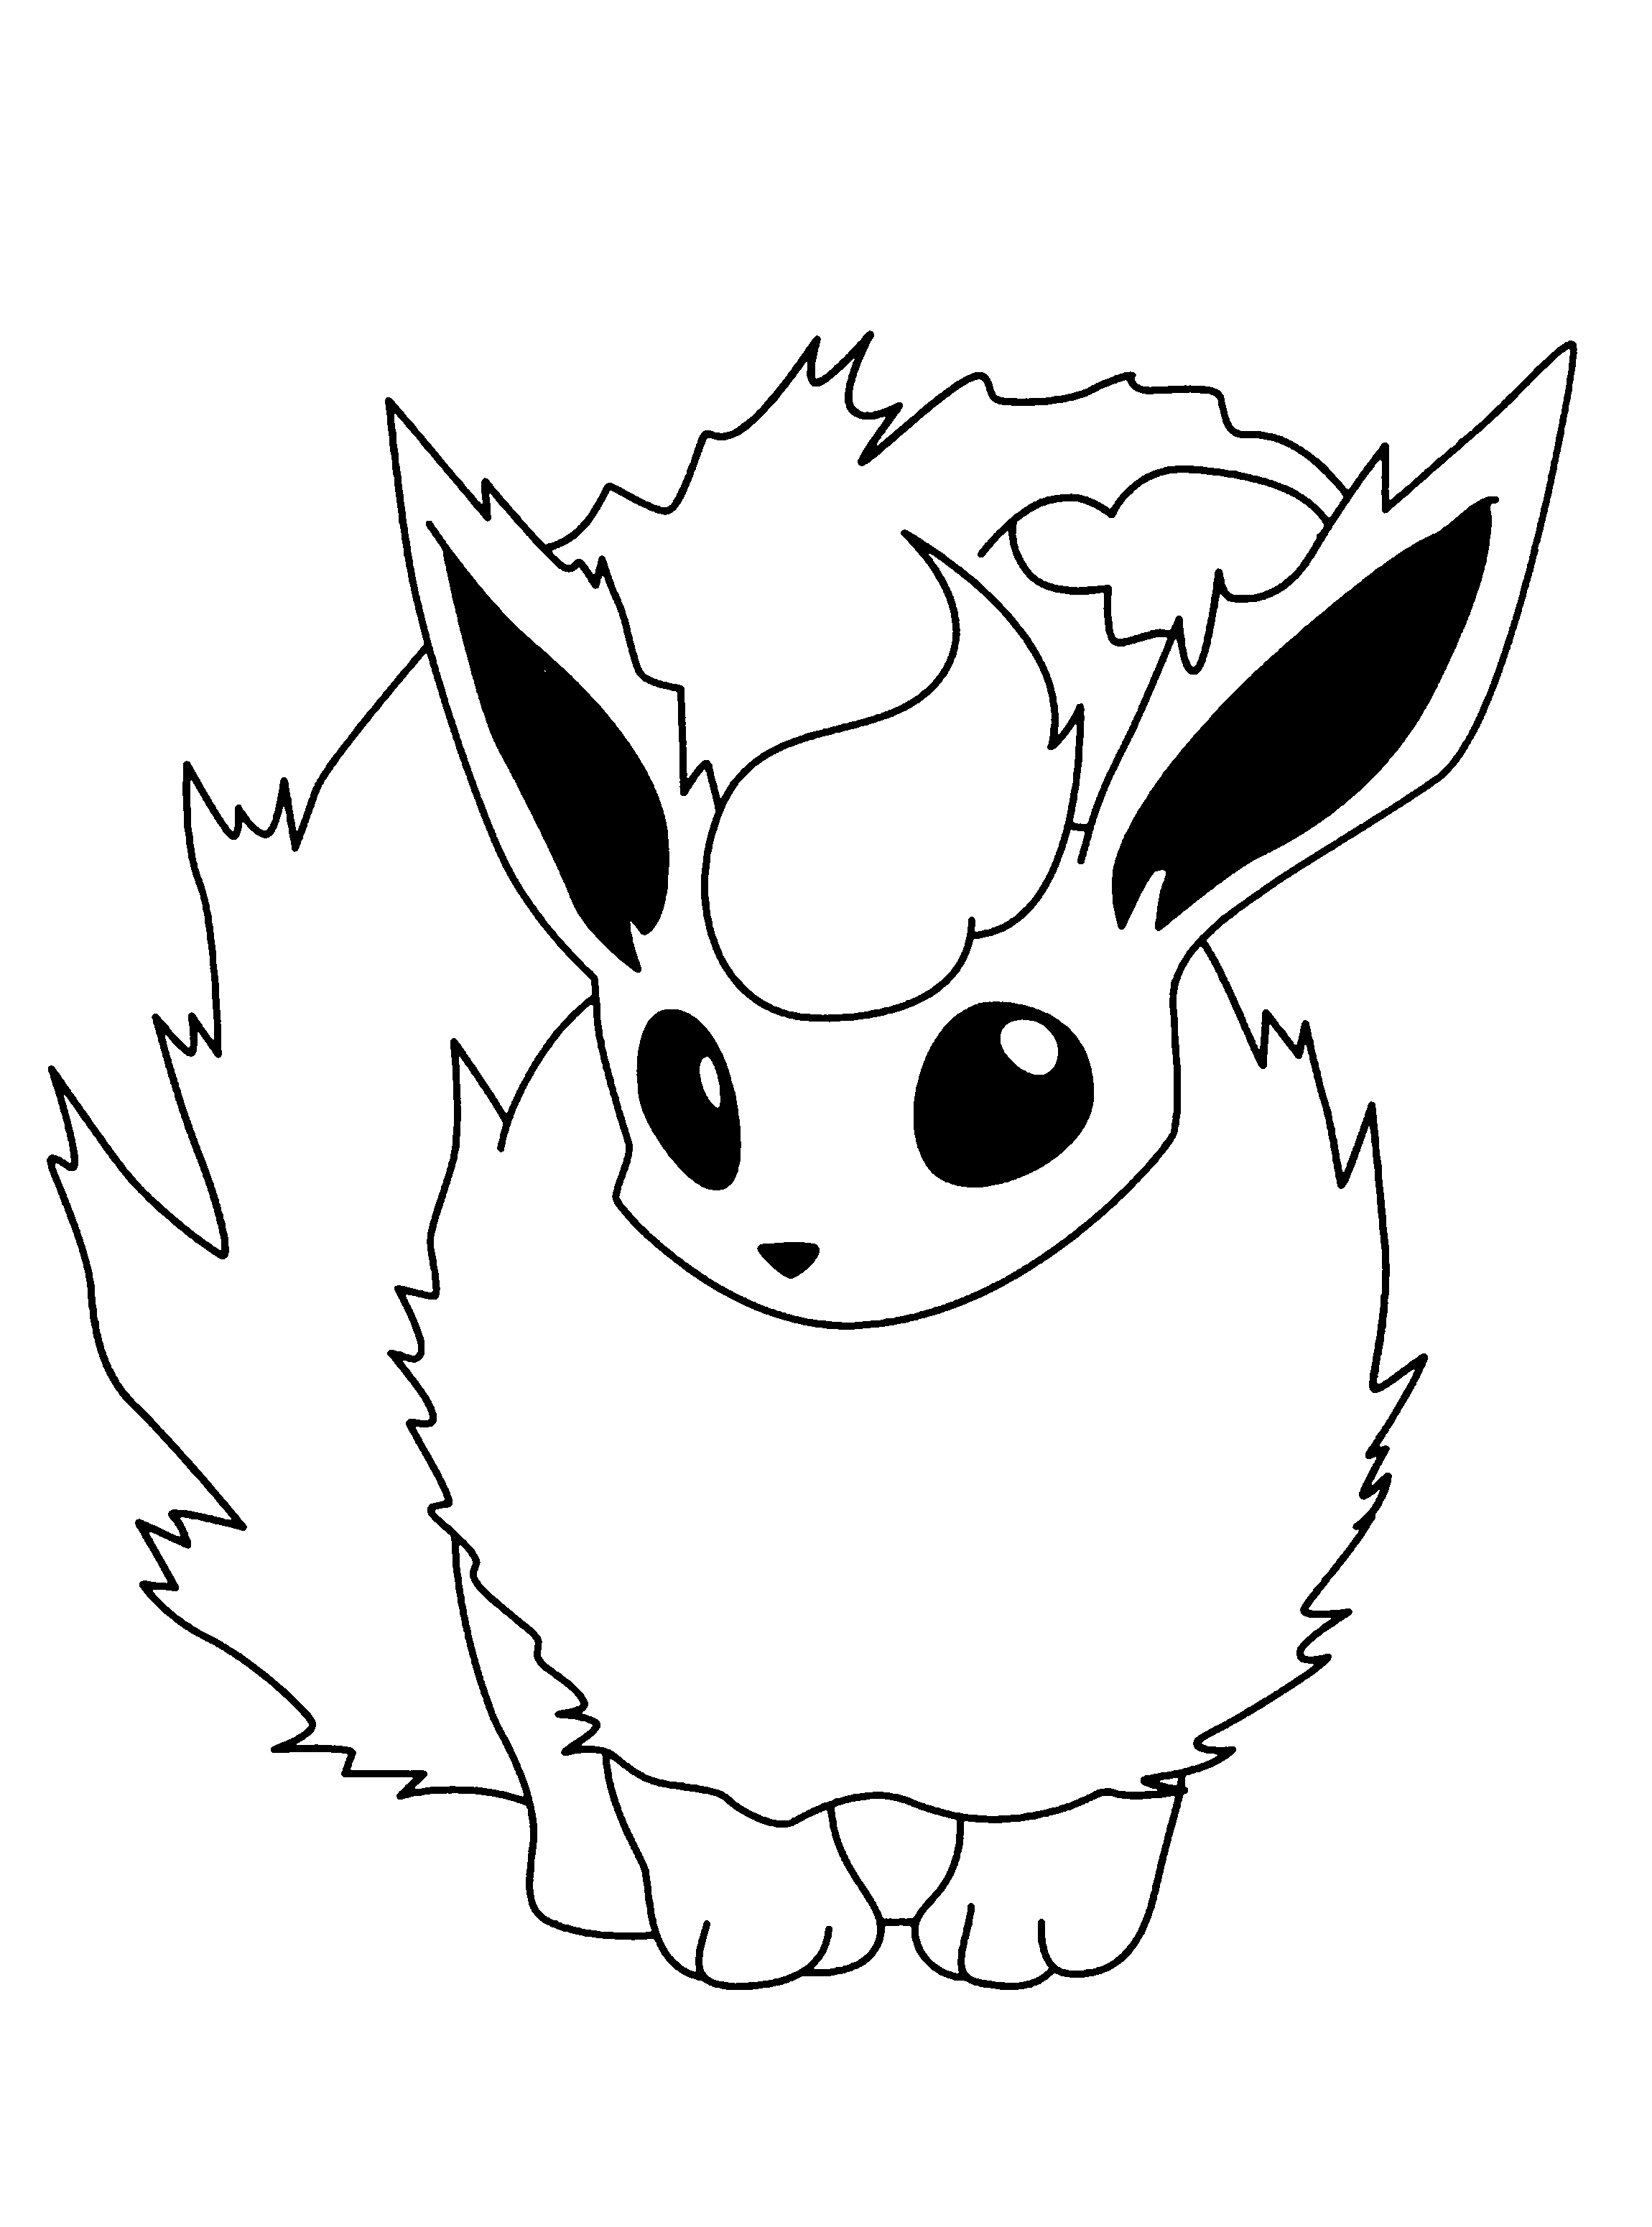 pokemon online coloring pages - pokemon coloring pages download pokemon images and print